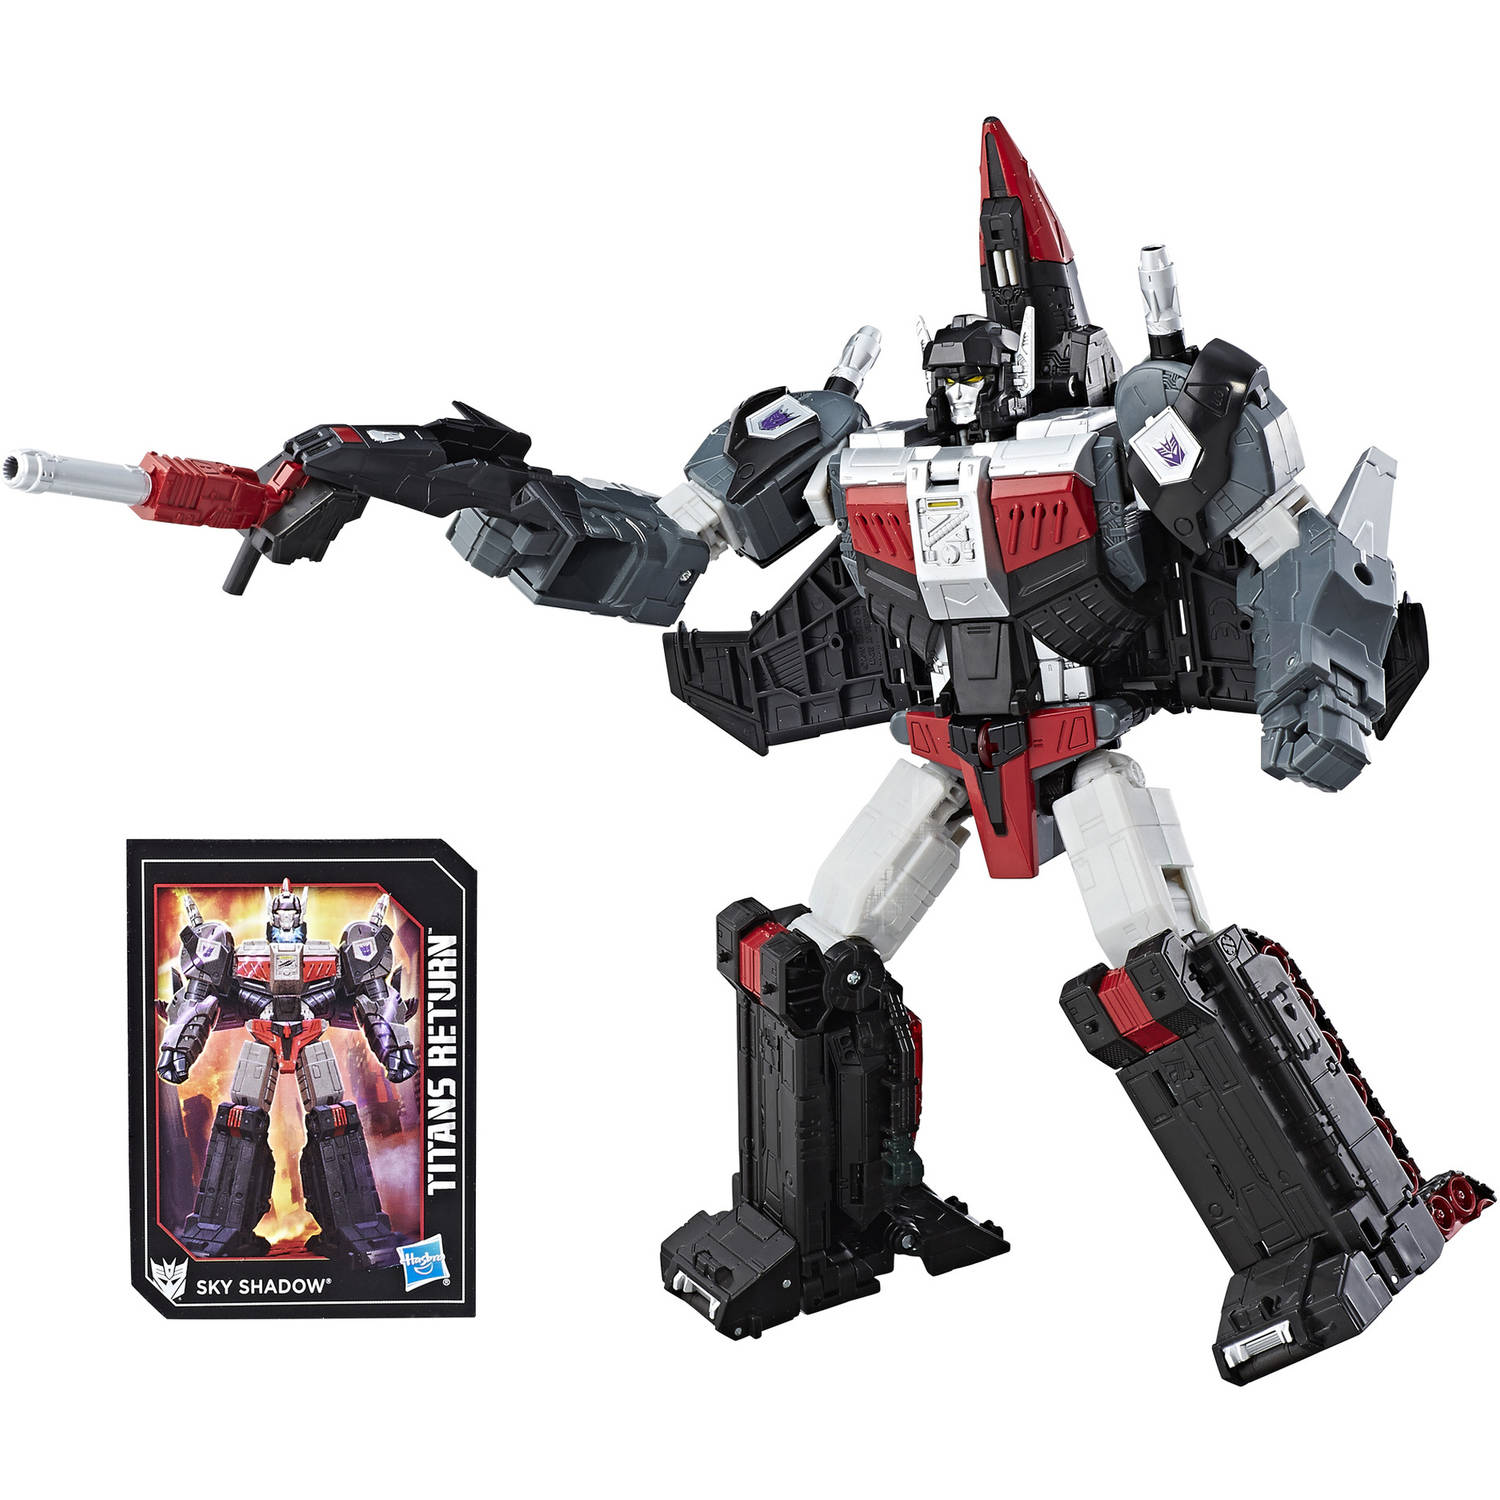 Transformers Generations Titans Return Sky Shadow and Ominus by Hasbro